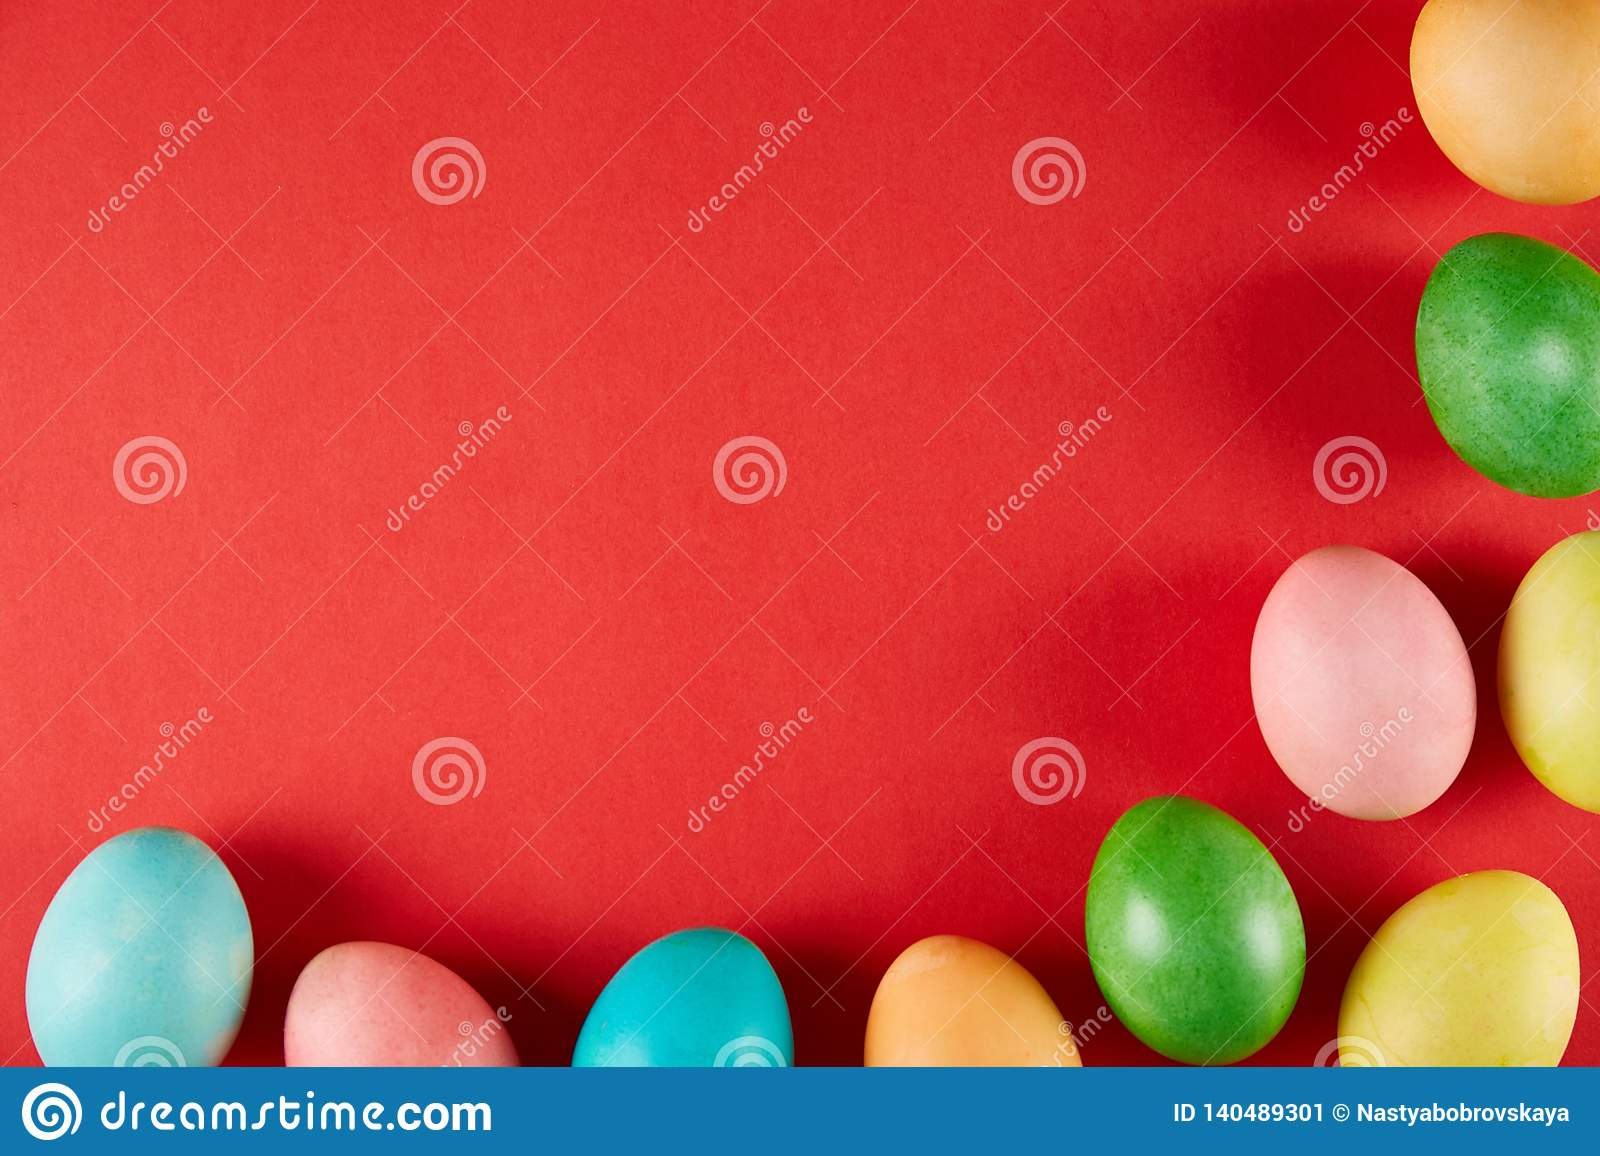 Traditional painted Easter eggs concept. Top view composition